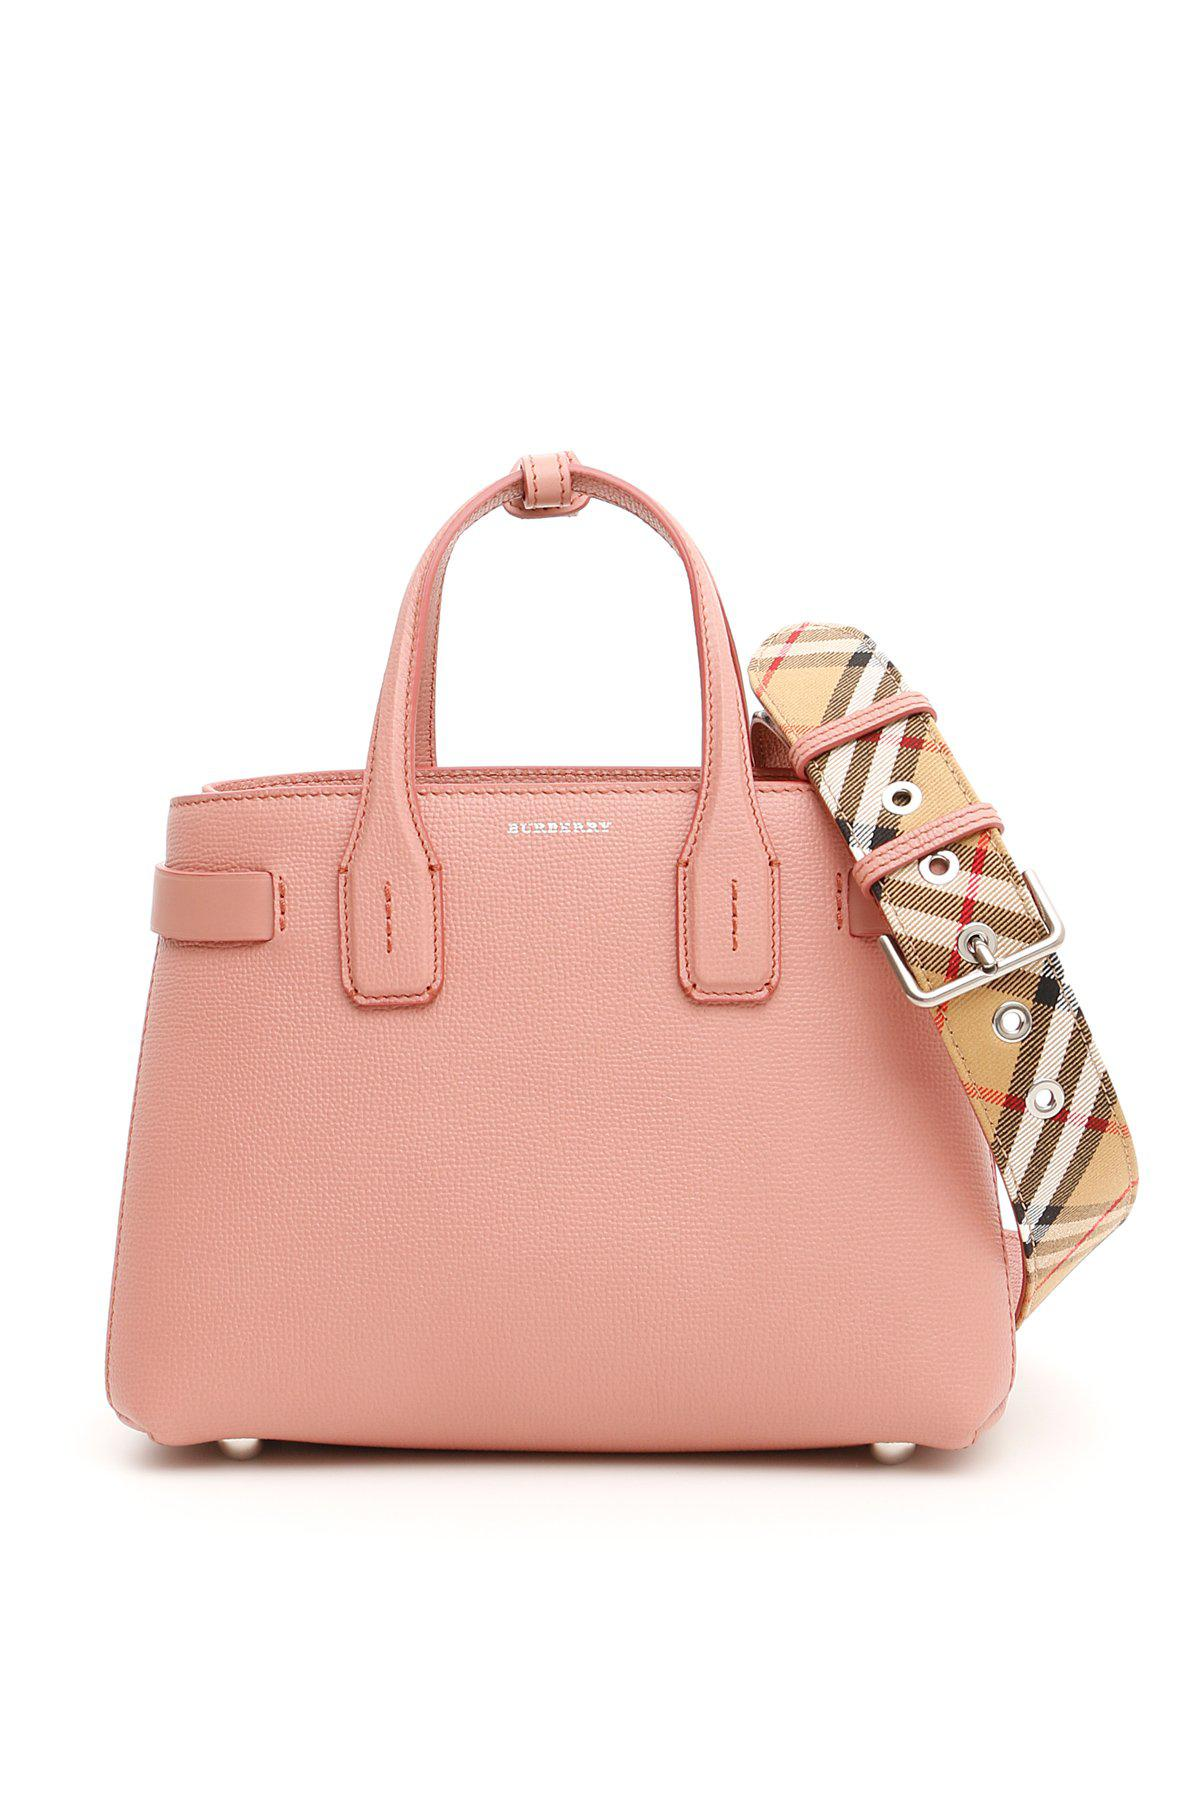 Burberry Banner Tote Bag in Pink - Lyst 299909414f1d9